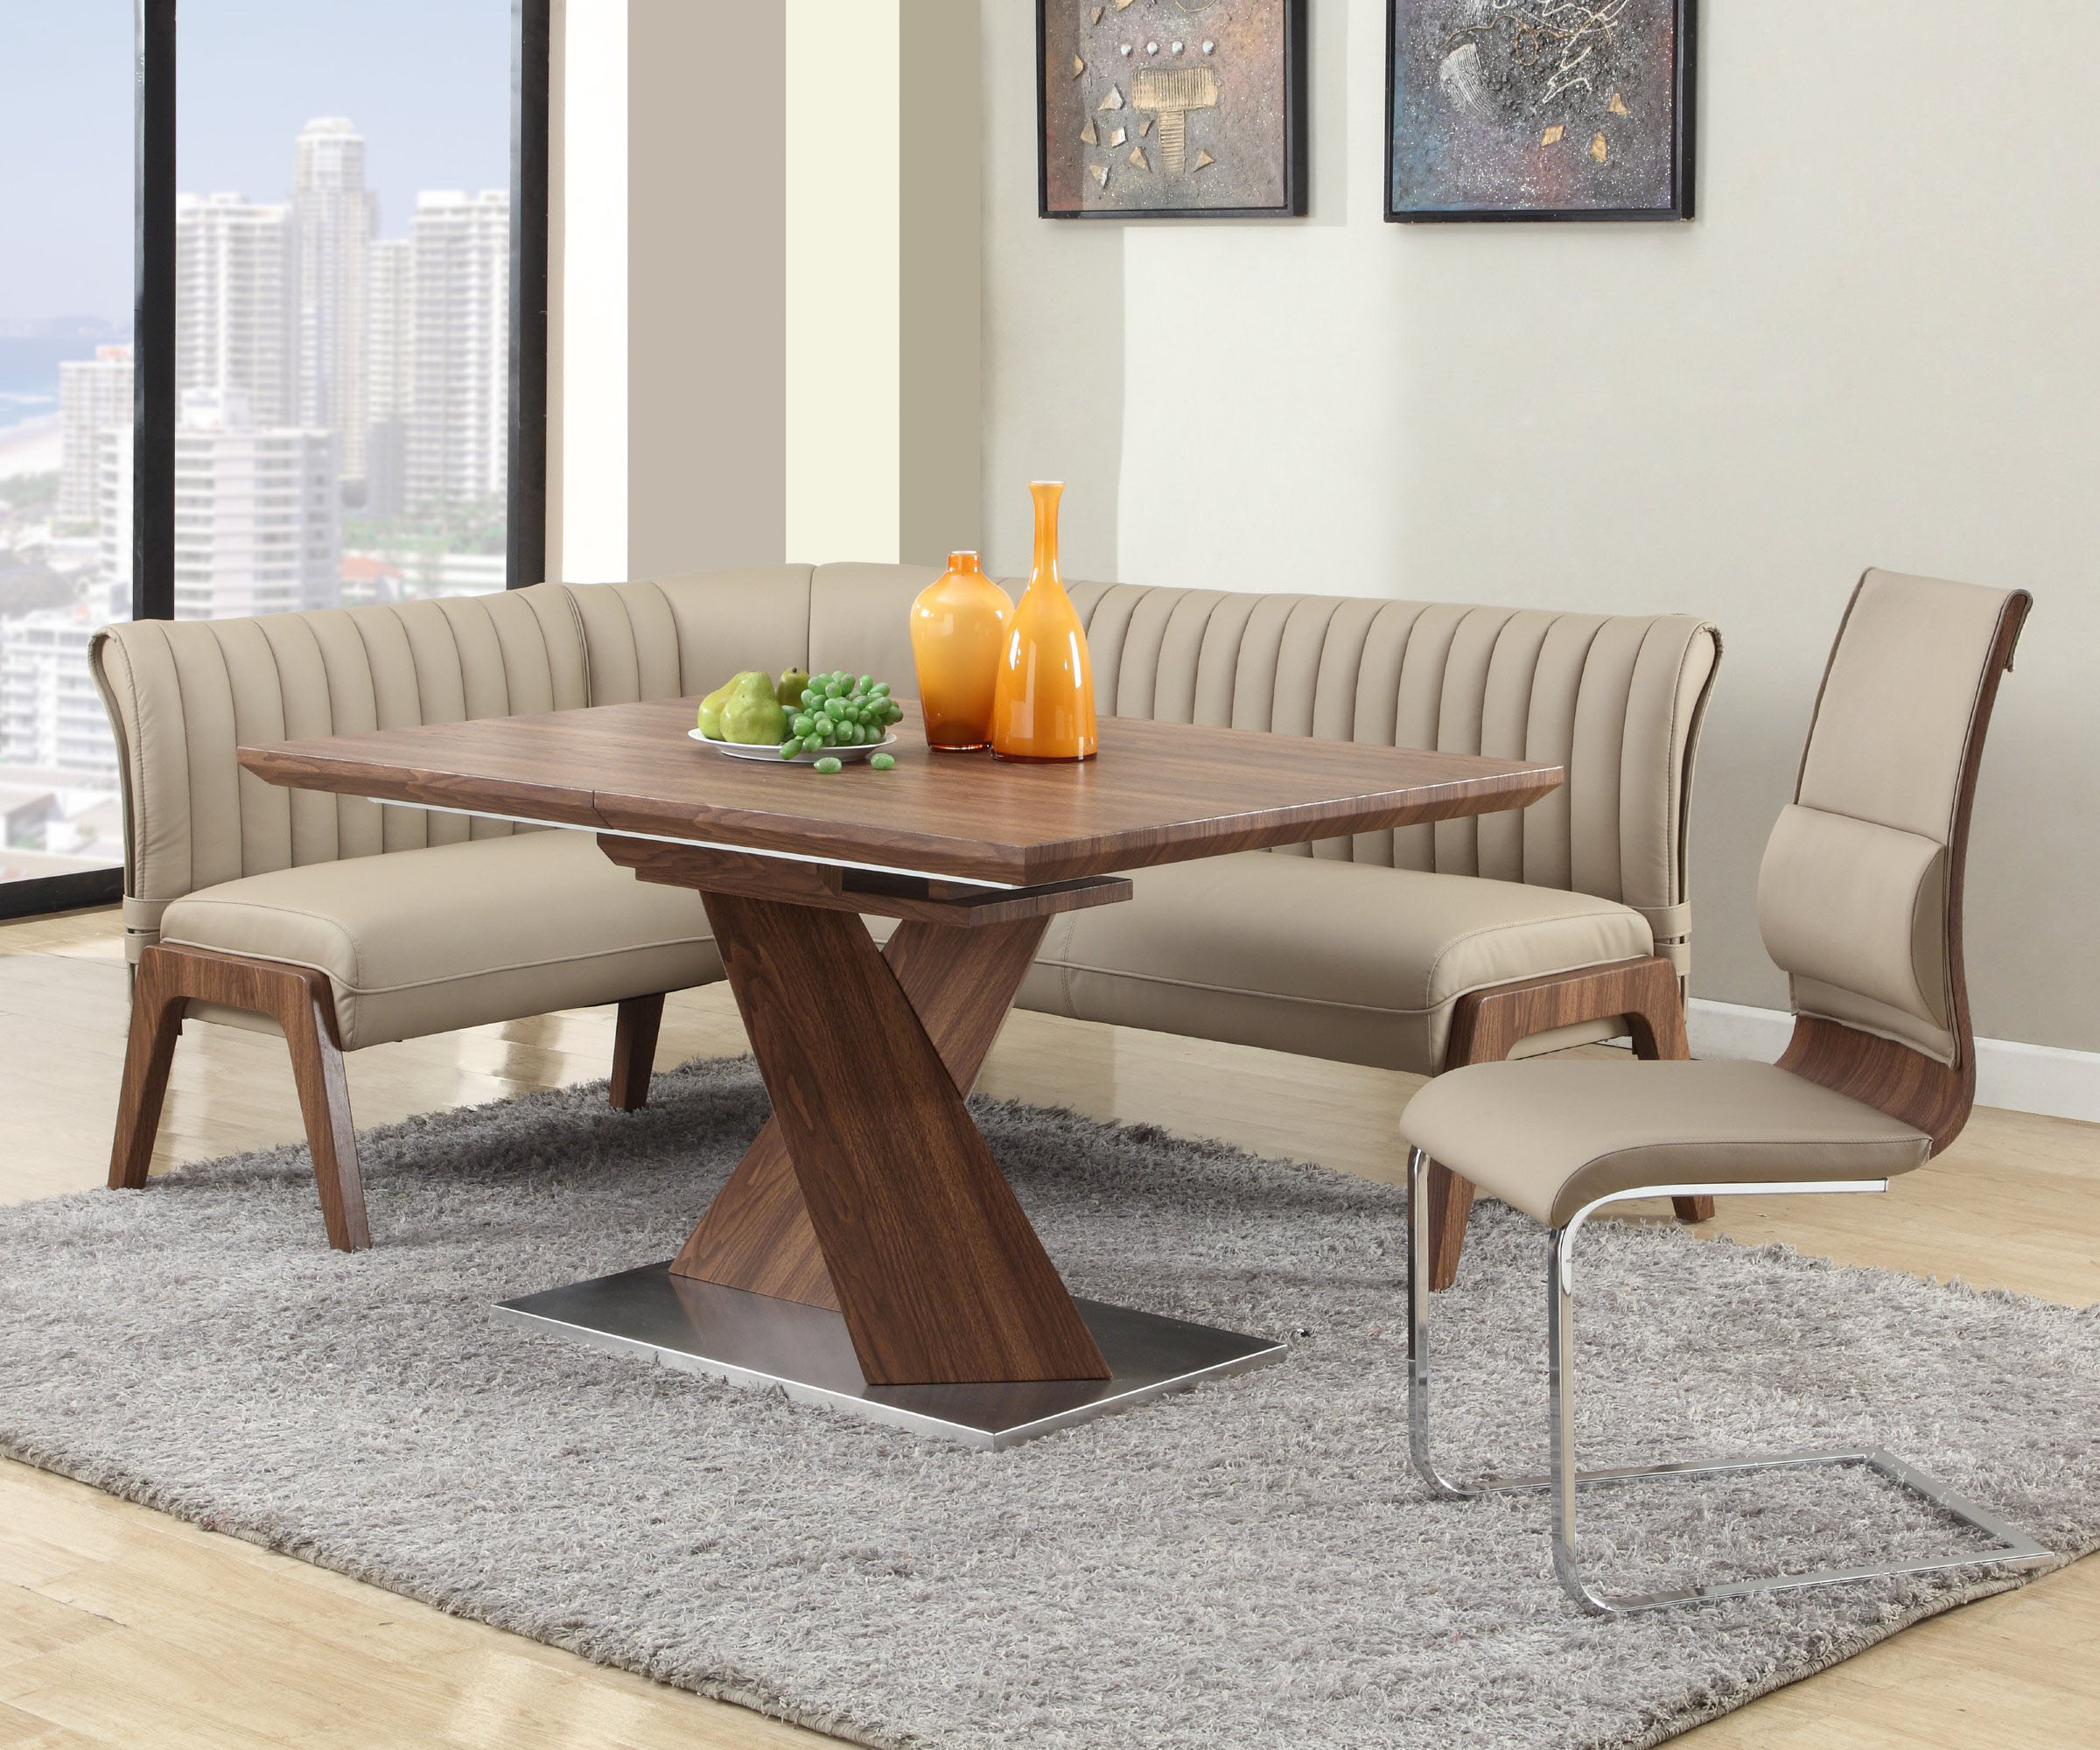 Dining Room Sets: Extendable In Wood Leather Furniture Dining Room Sets With